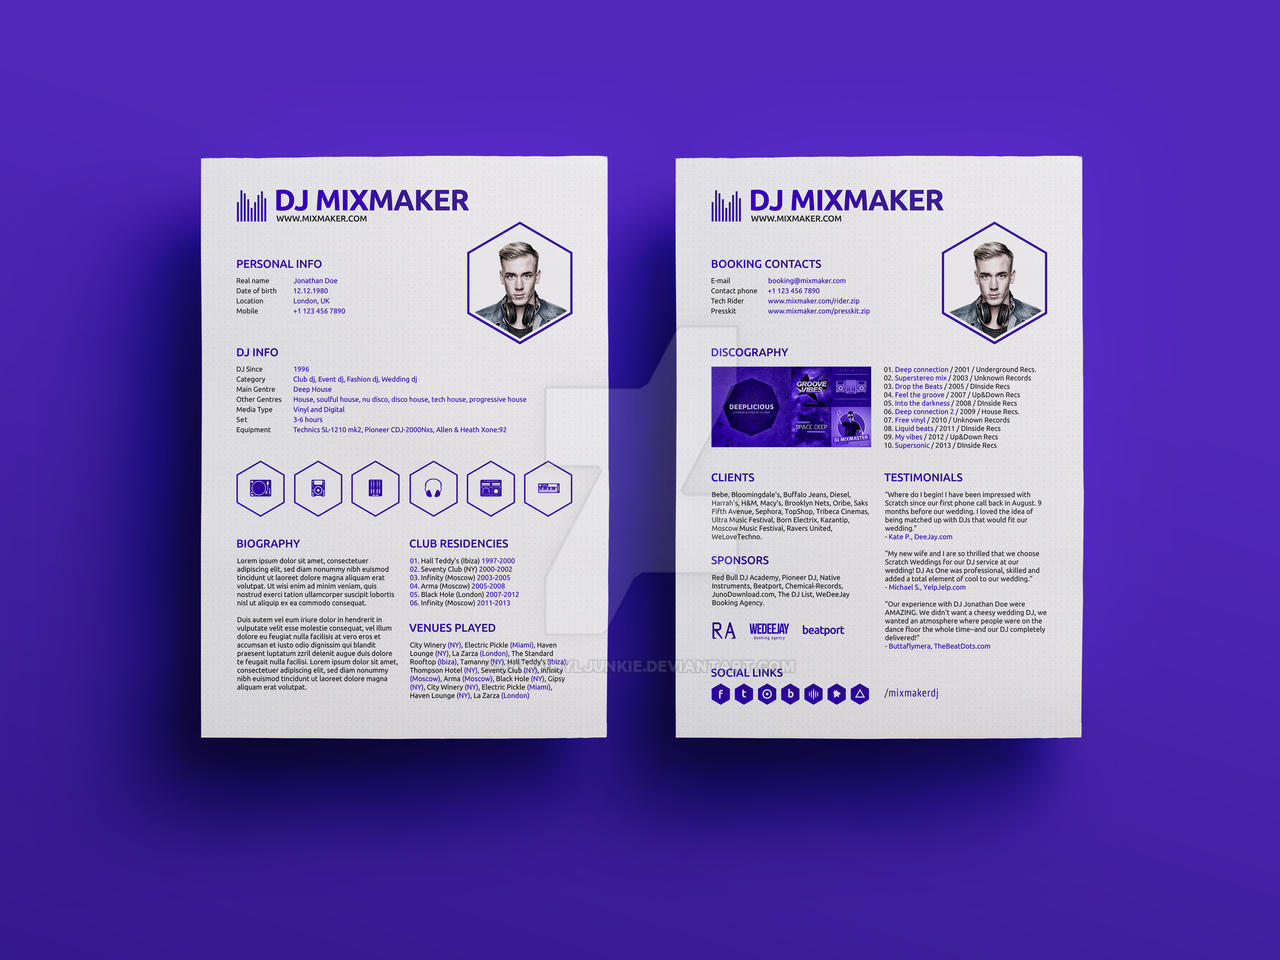 mixmaker dj resume press kit psd template by iamvinyljunkie on